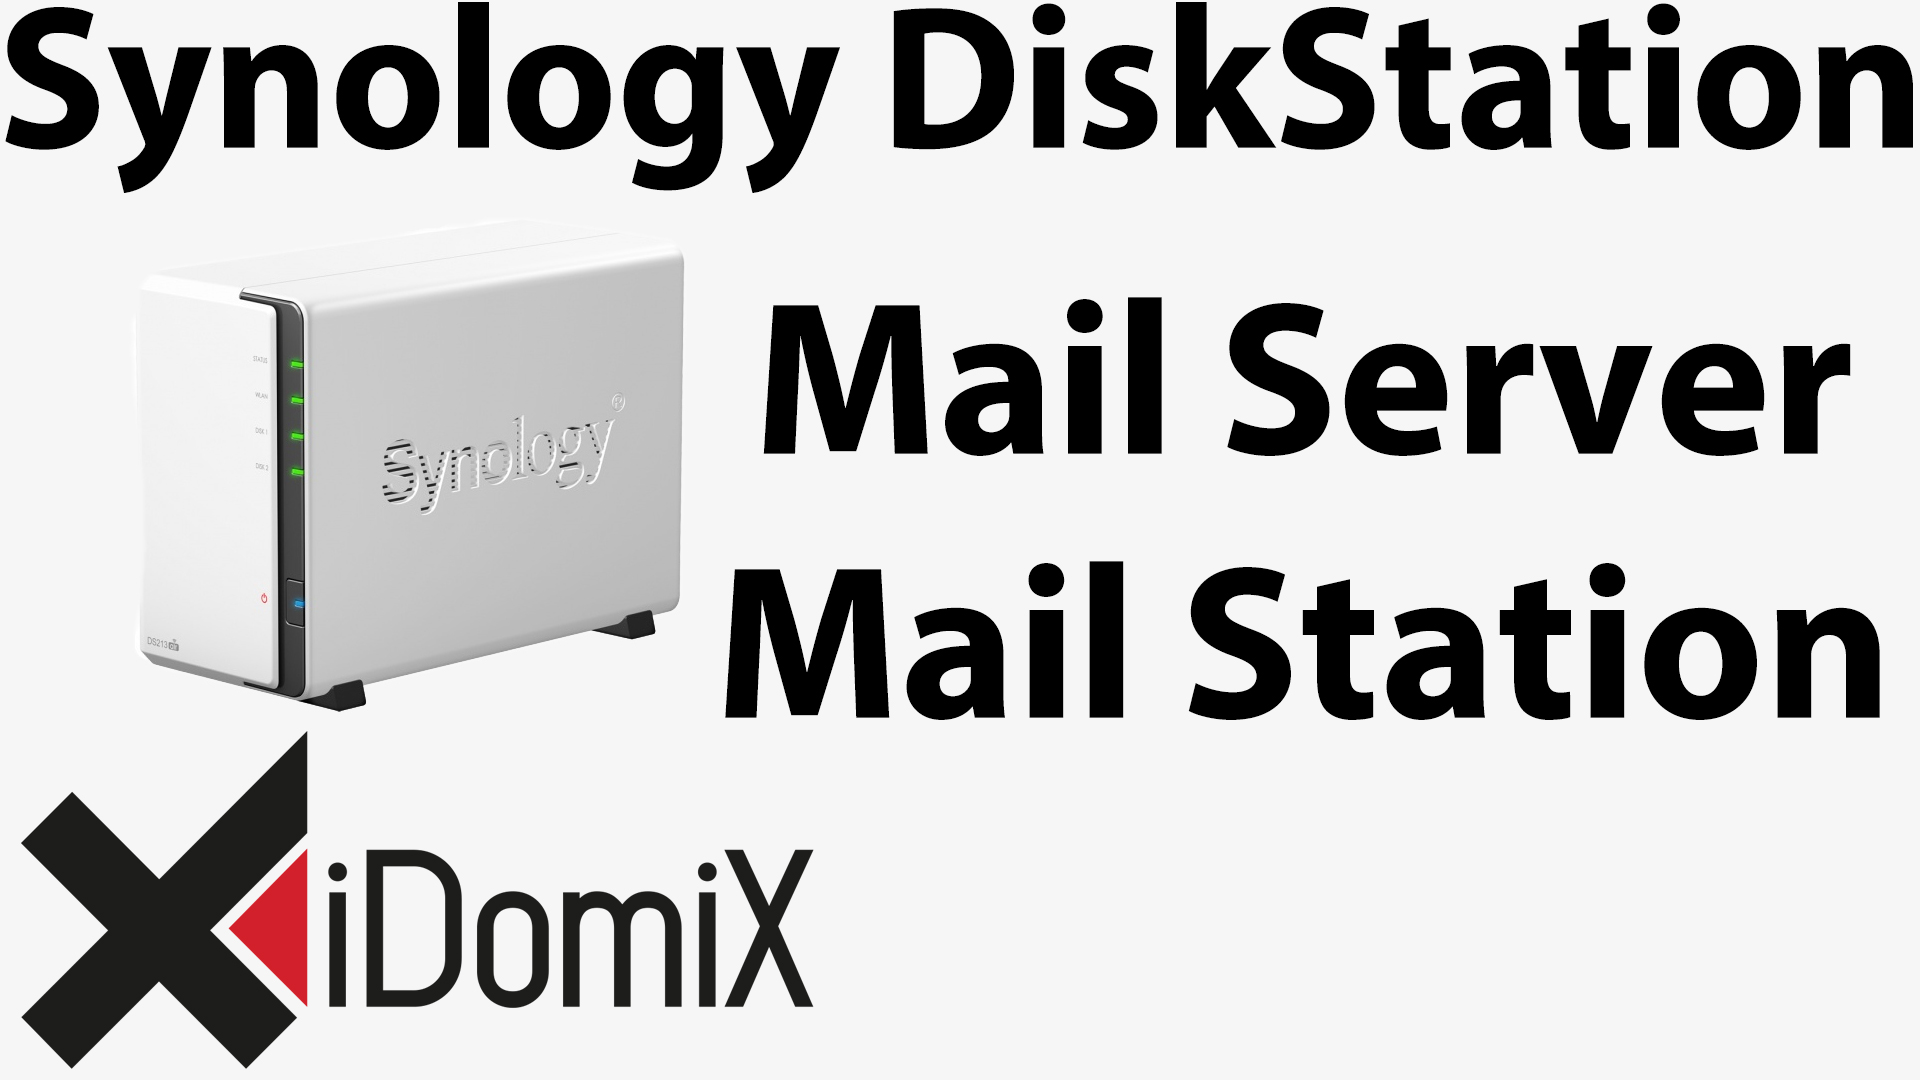 #240 Synology DiskStation Mail Server und Mail Station einrichten